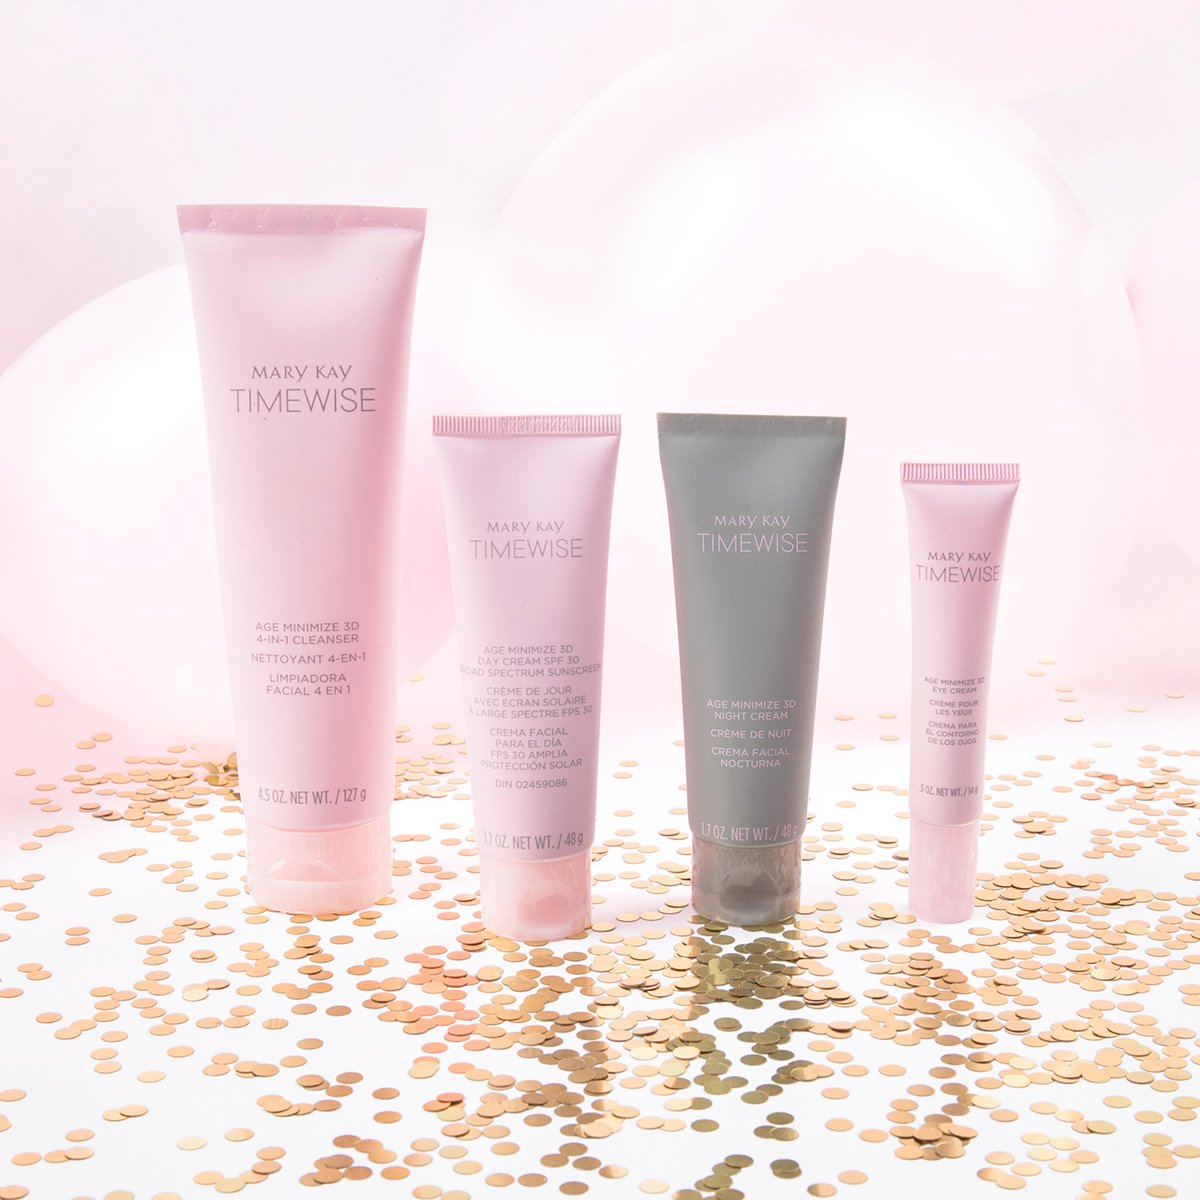 Mary Kay Timewise 3D cleanser, Day Cream, Night Cream and Eye Cream on top of rose gold confetti with pink balloons in the background.